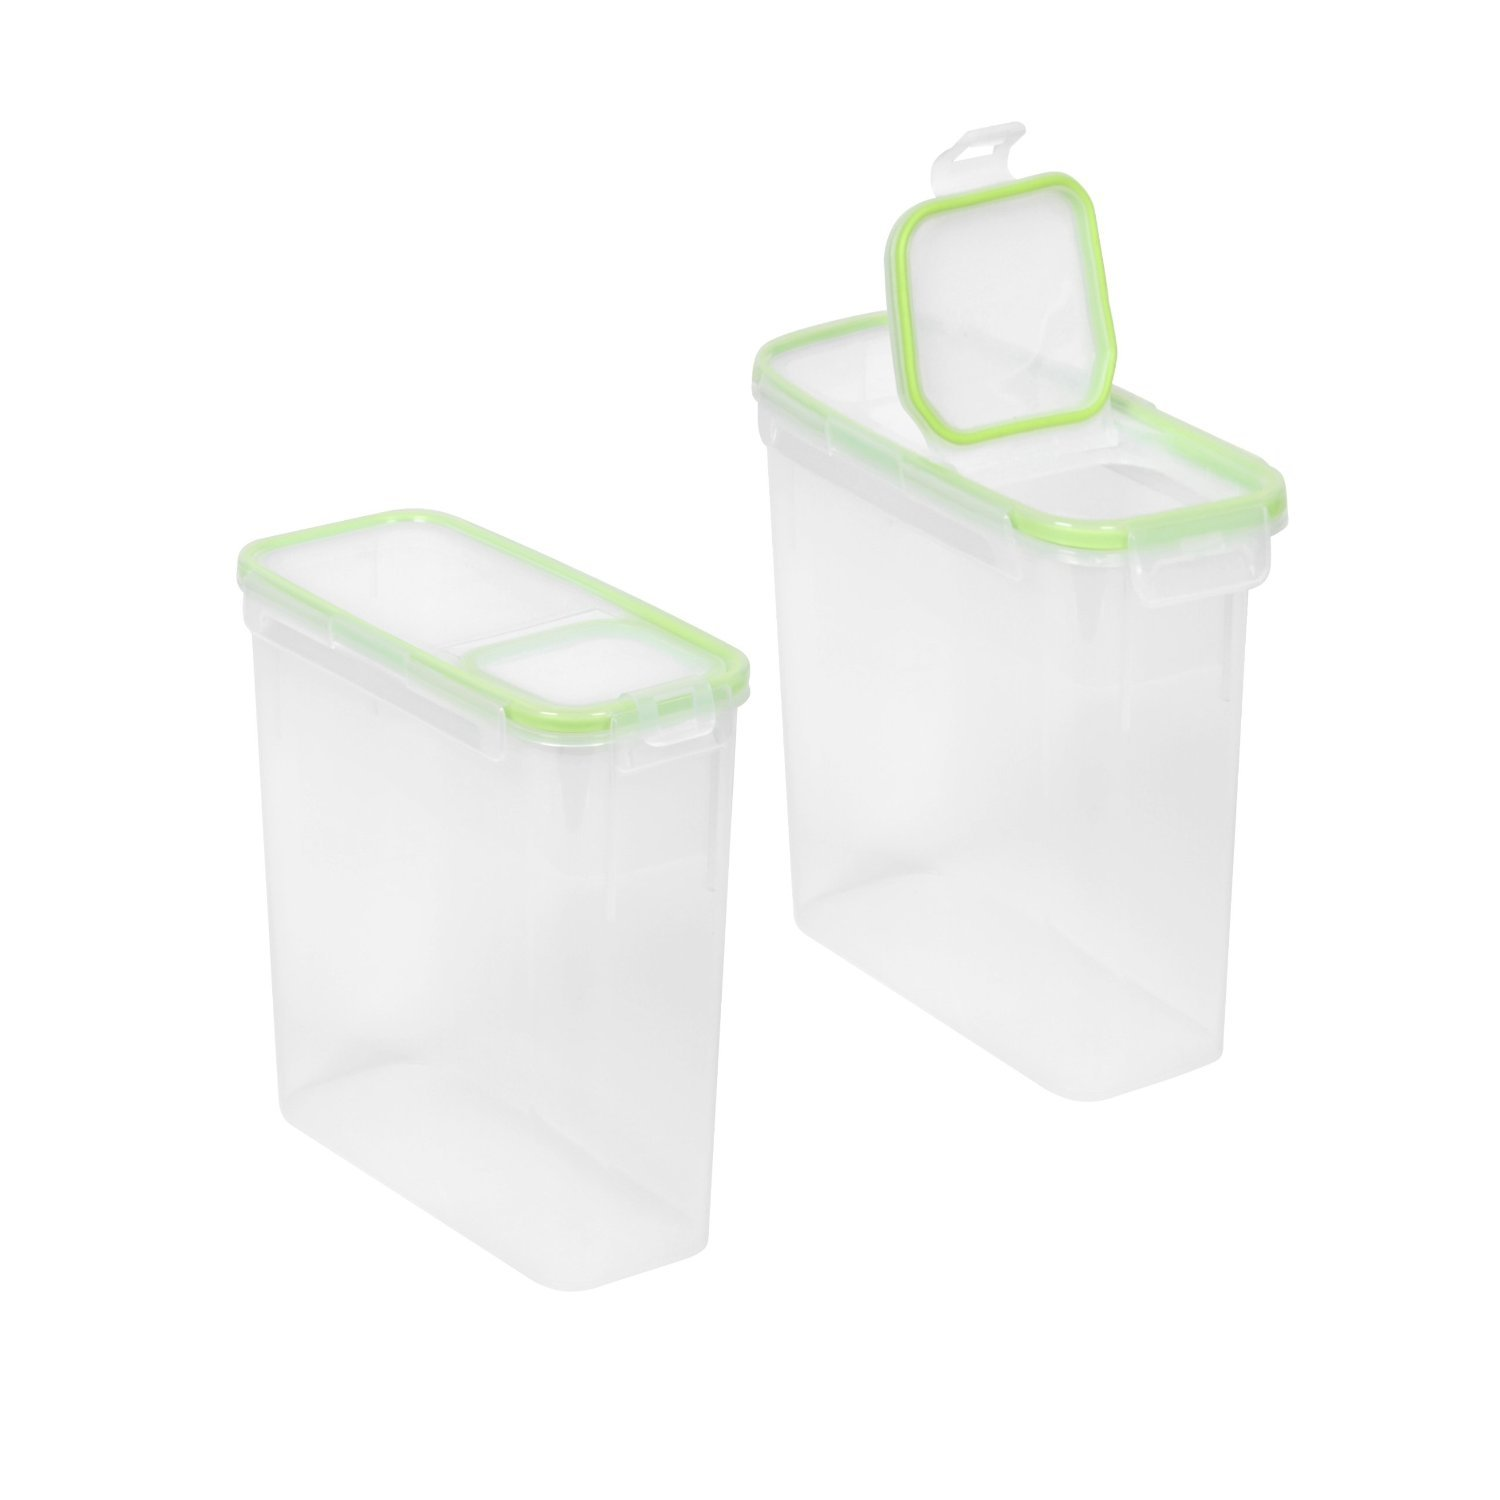 Superieur Amazon.com: Snapware 17 Cup Airtight Flip Storage Container, Plastic: Food  Savers: Kitchen U0026 Dining